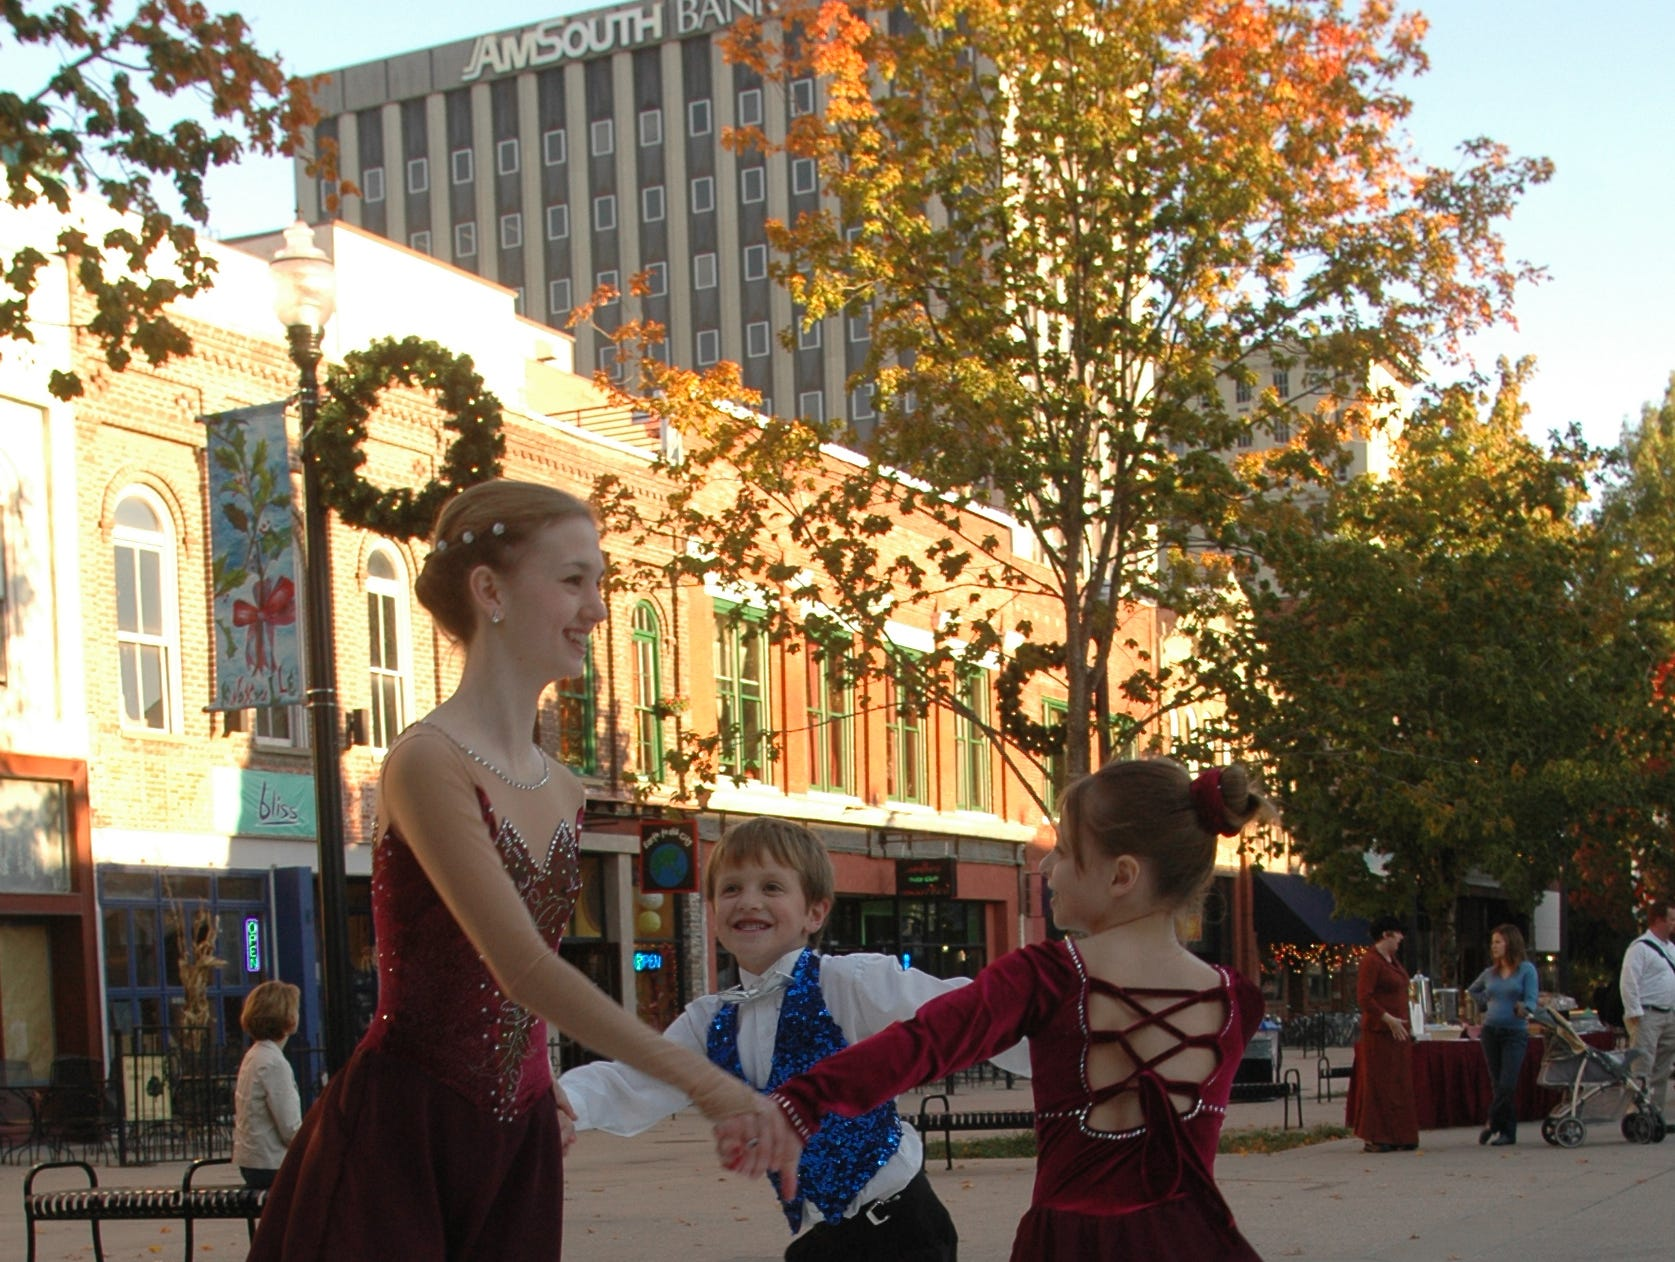 Kassandra Hazard (Left),14, Jack Varnon (Center), 6, and Rebecca Varnon (Right), 8, practice their skating moves before the announcement of Christmas in the City events Wednesday in Market Square. Among the holiday festivities announced by Knoxville Mayor Bill Haslam will be the return of an ice skating rink to Market Square.  10/02/05